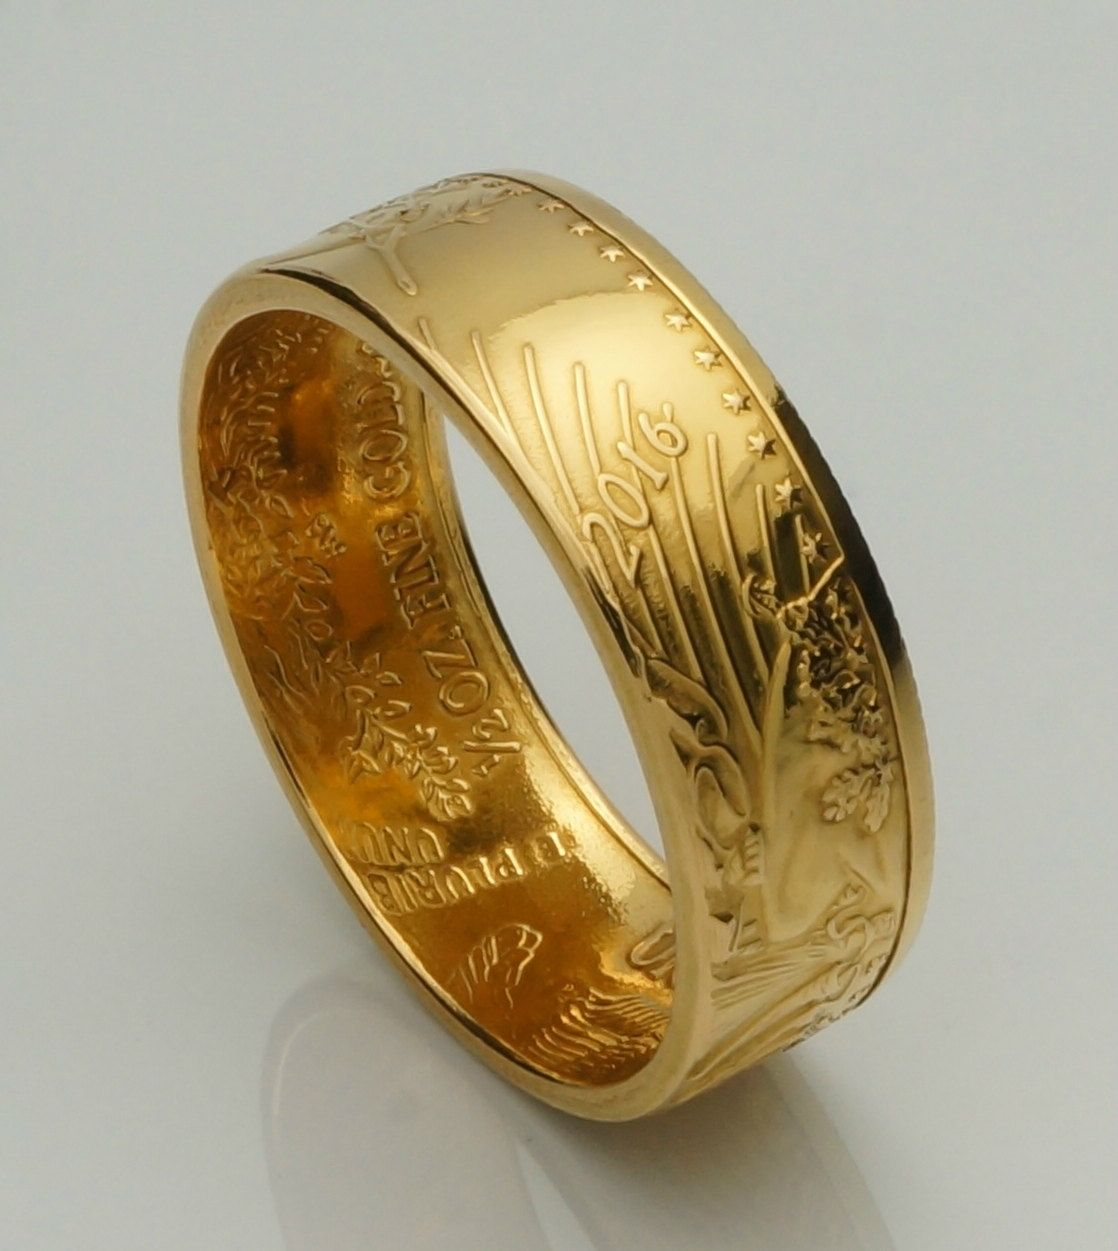 American Eagle Ring Handmade From 1 2 Oz 22k Gold Coin Ring Etsy Gold Coin Ring Coin Ring Handmade Ring